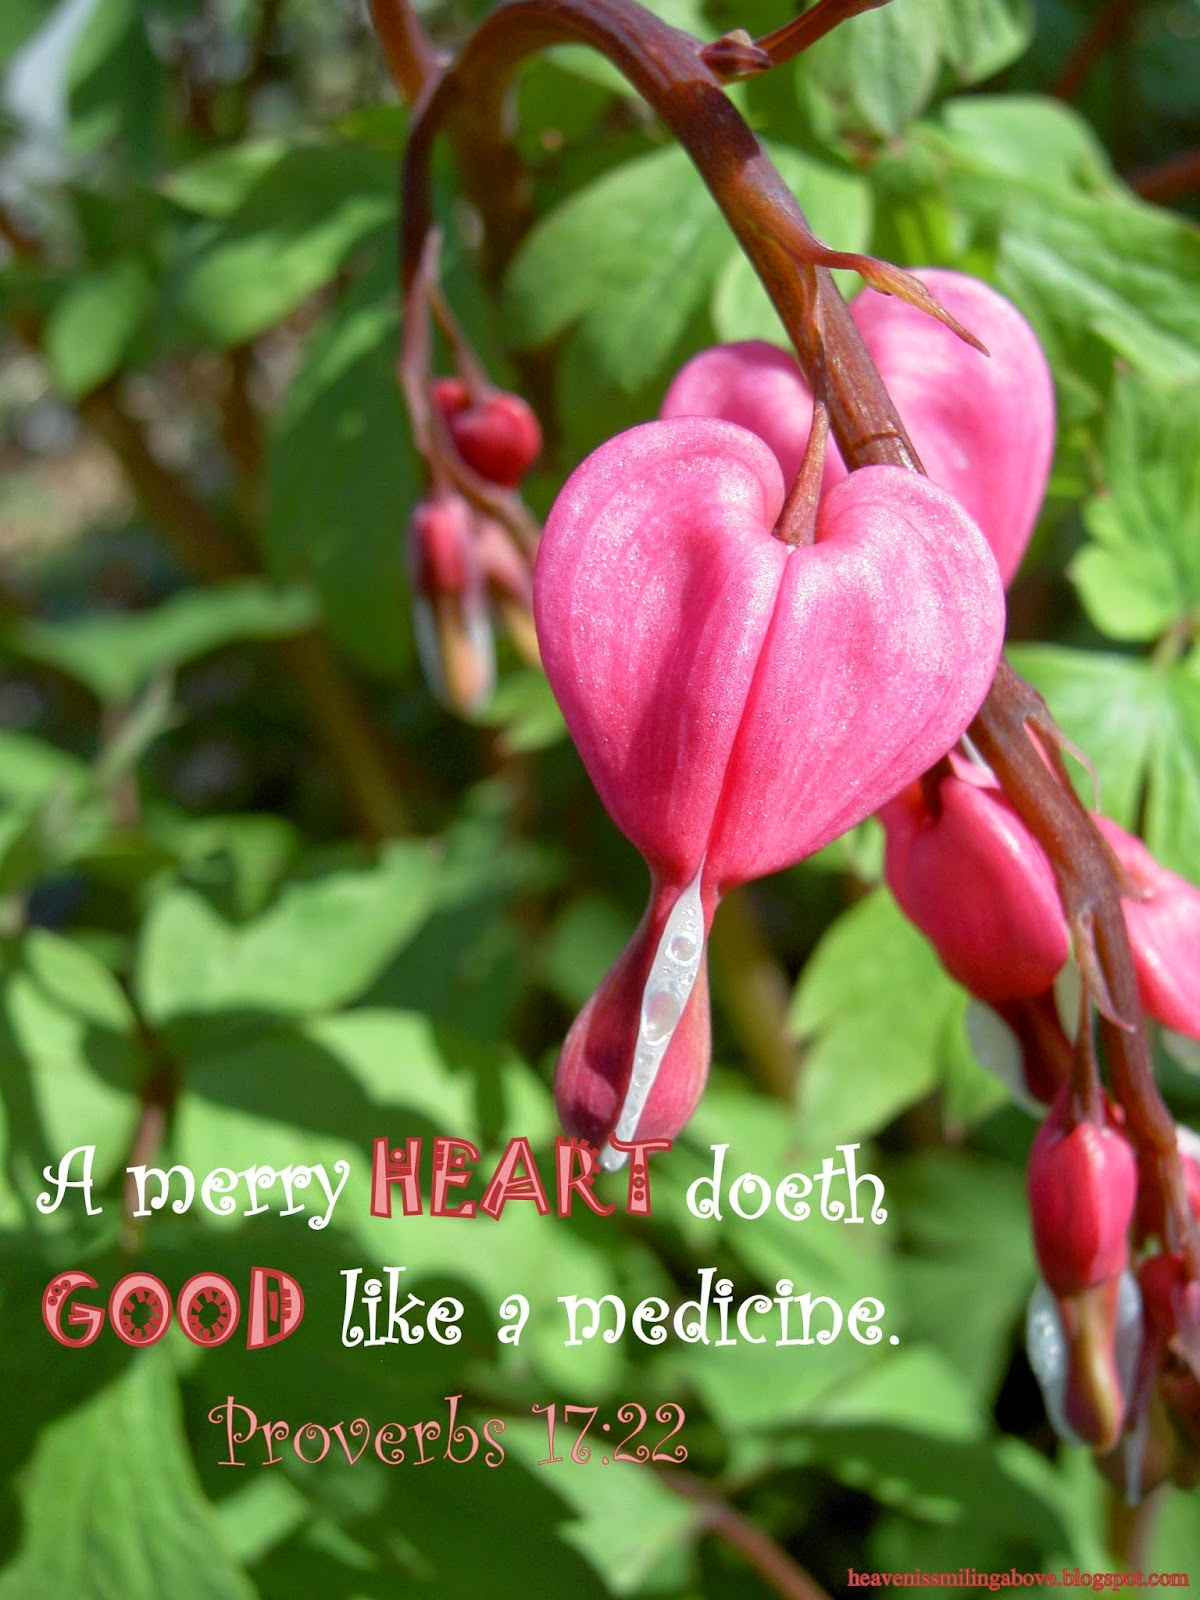 A merry heart doeth good like a medicine proverbs 17:22